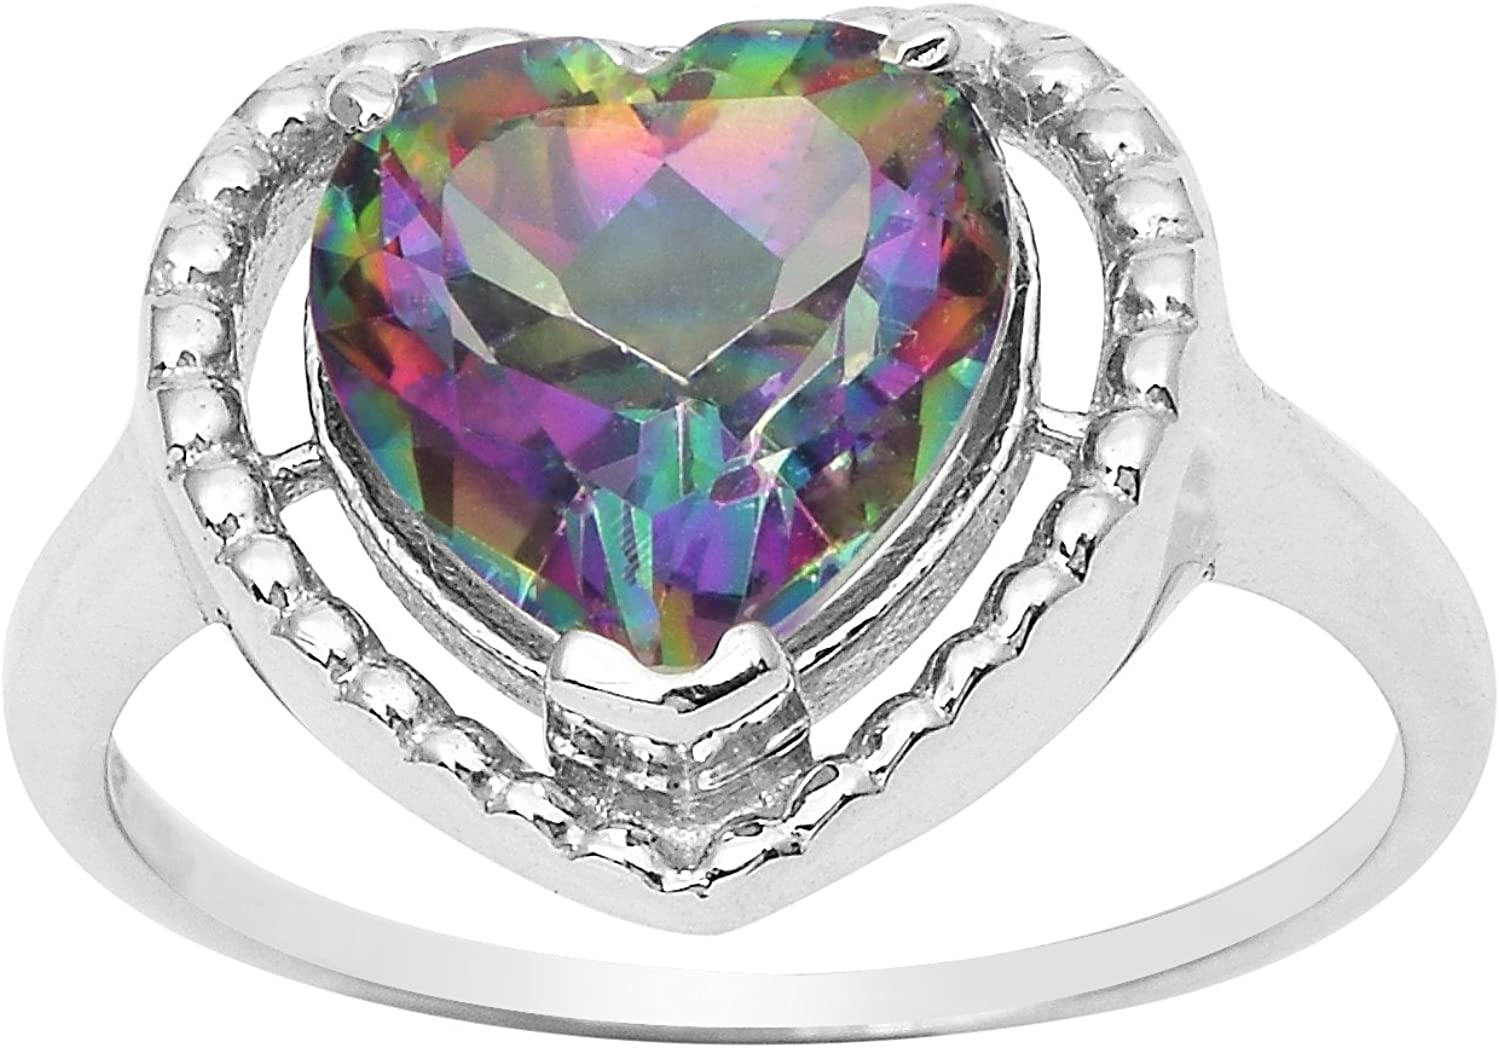 Shine Jewel Mystic topaz heart gemstone 925 sterling silver valentine '' heart '' forma anillo para mujer